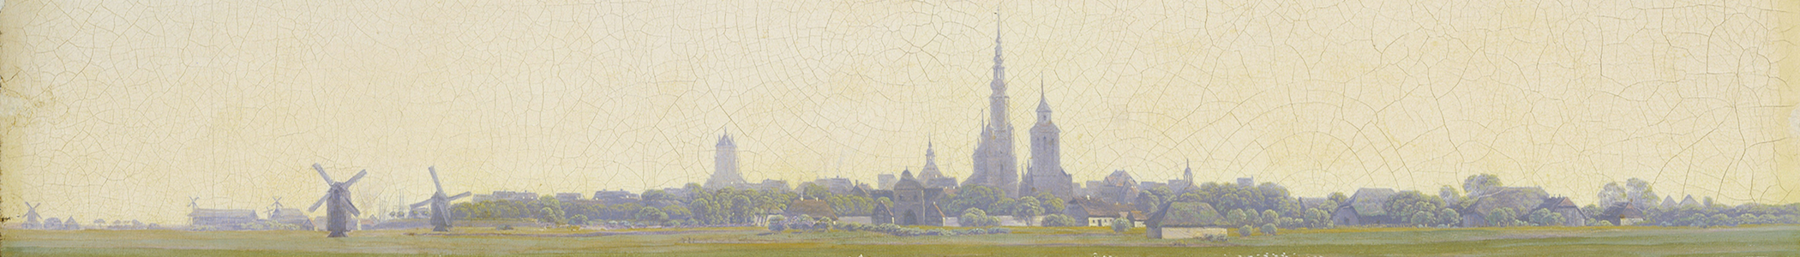 Greifswald retained much of its historic charm, here depited by Caspar David Friedrich